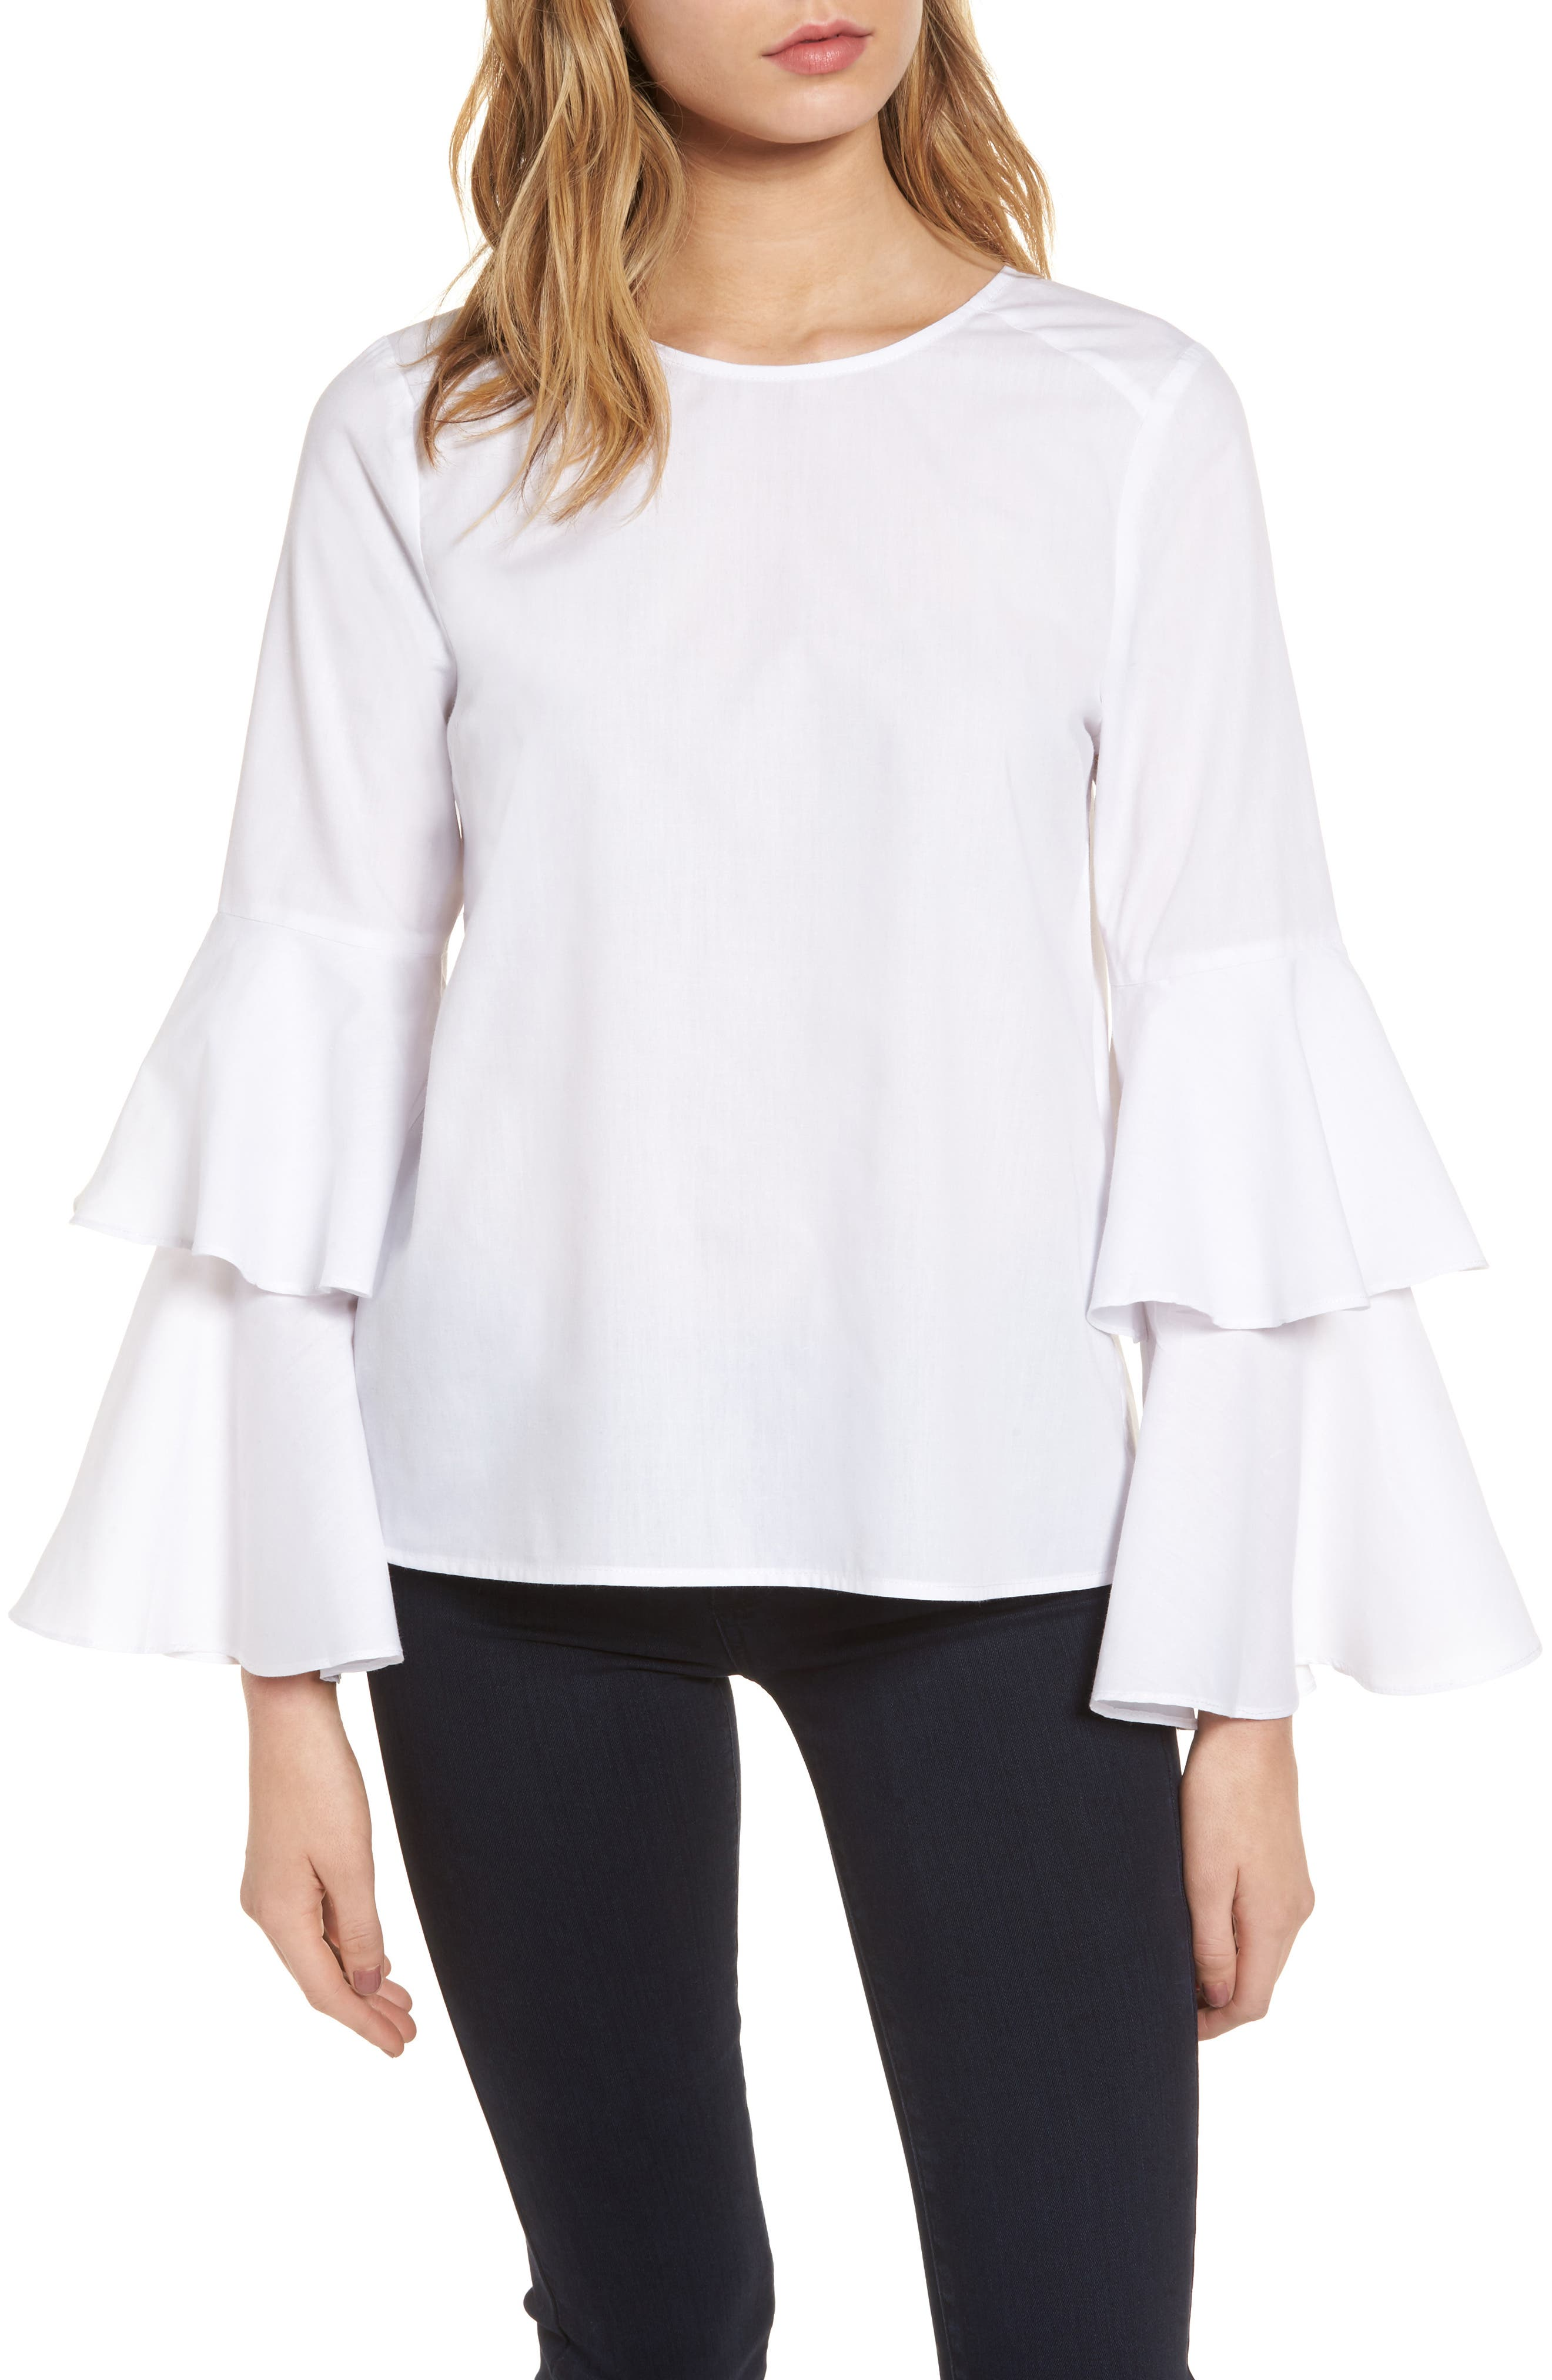 Alternate Image 1 Selected - Chelsea28 Bell Sleeve Poplin Top